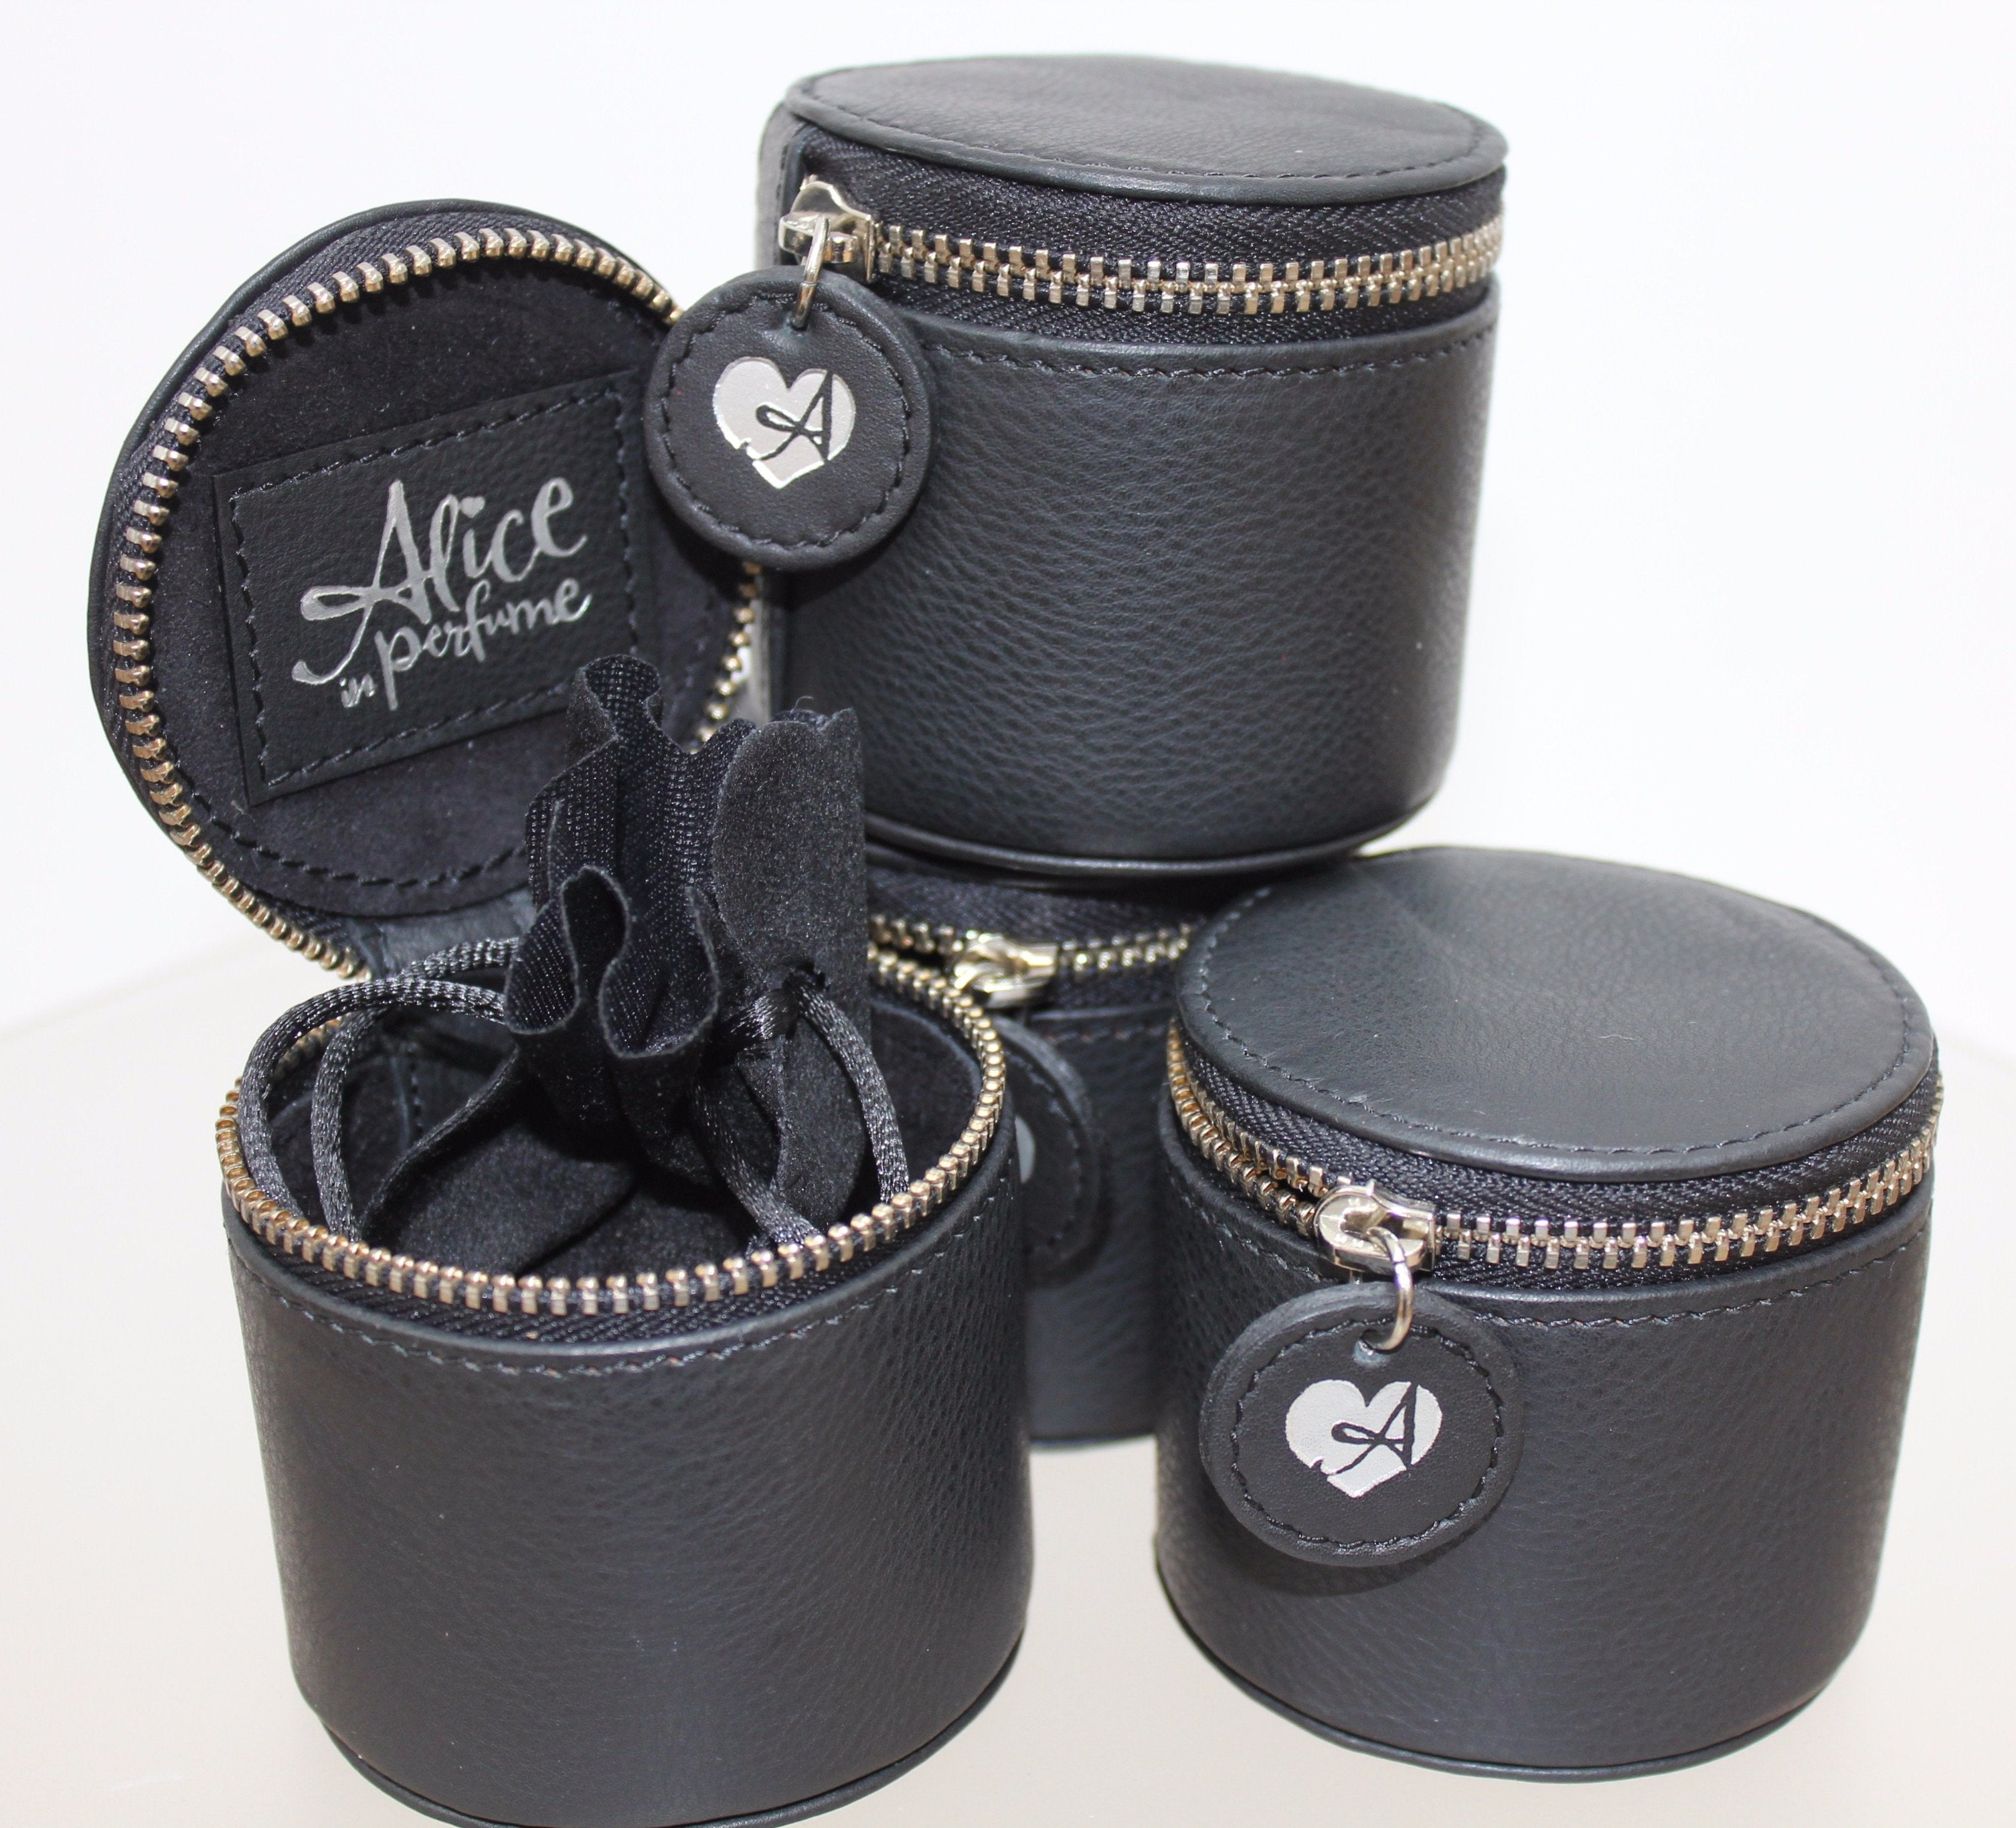 Luxury leather jewellery boxes – round